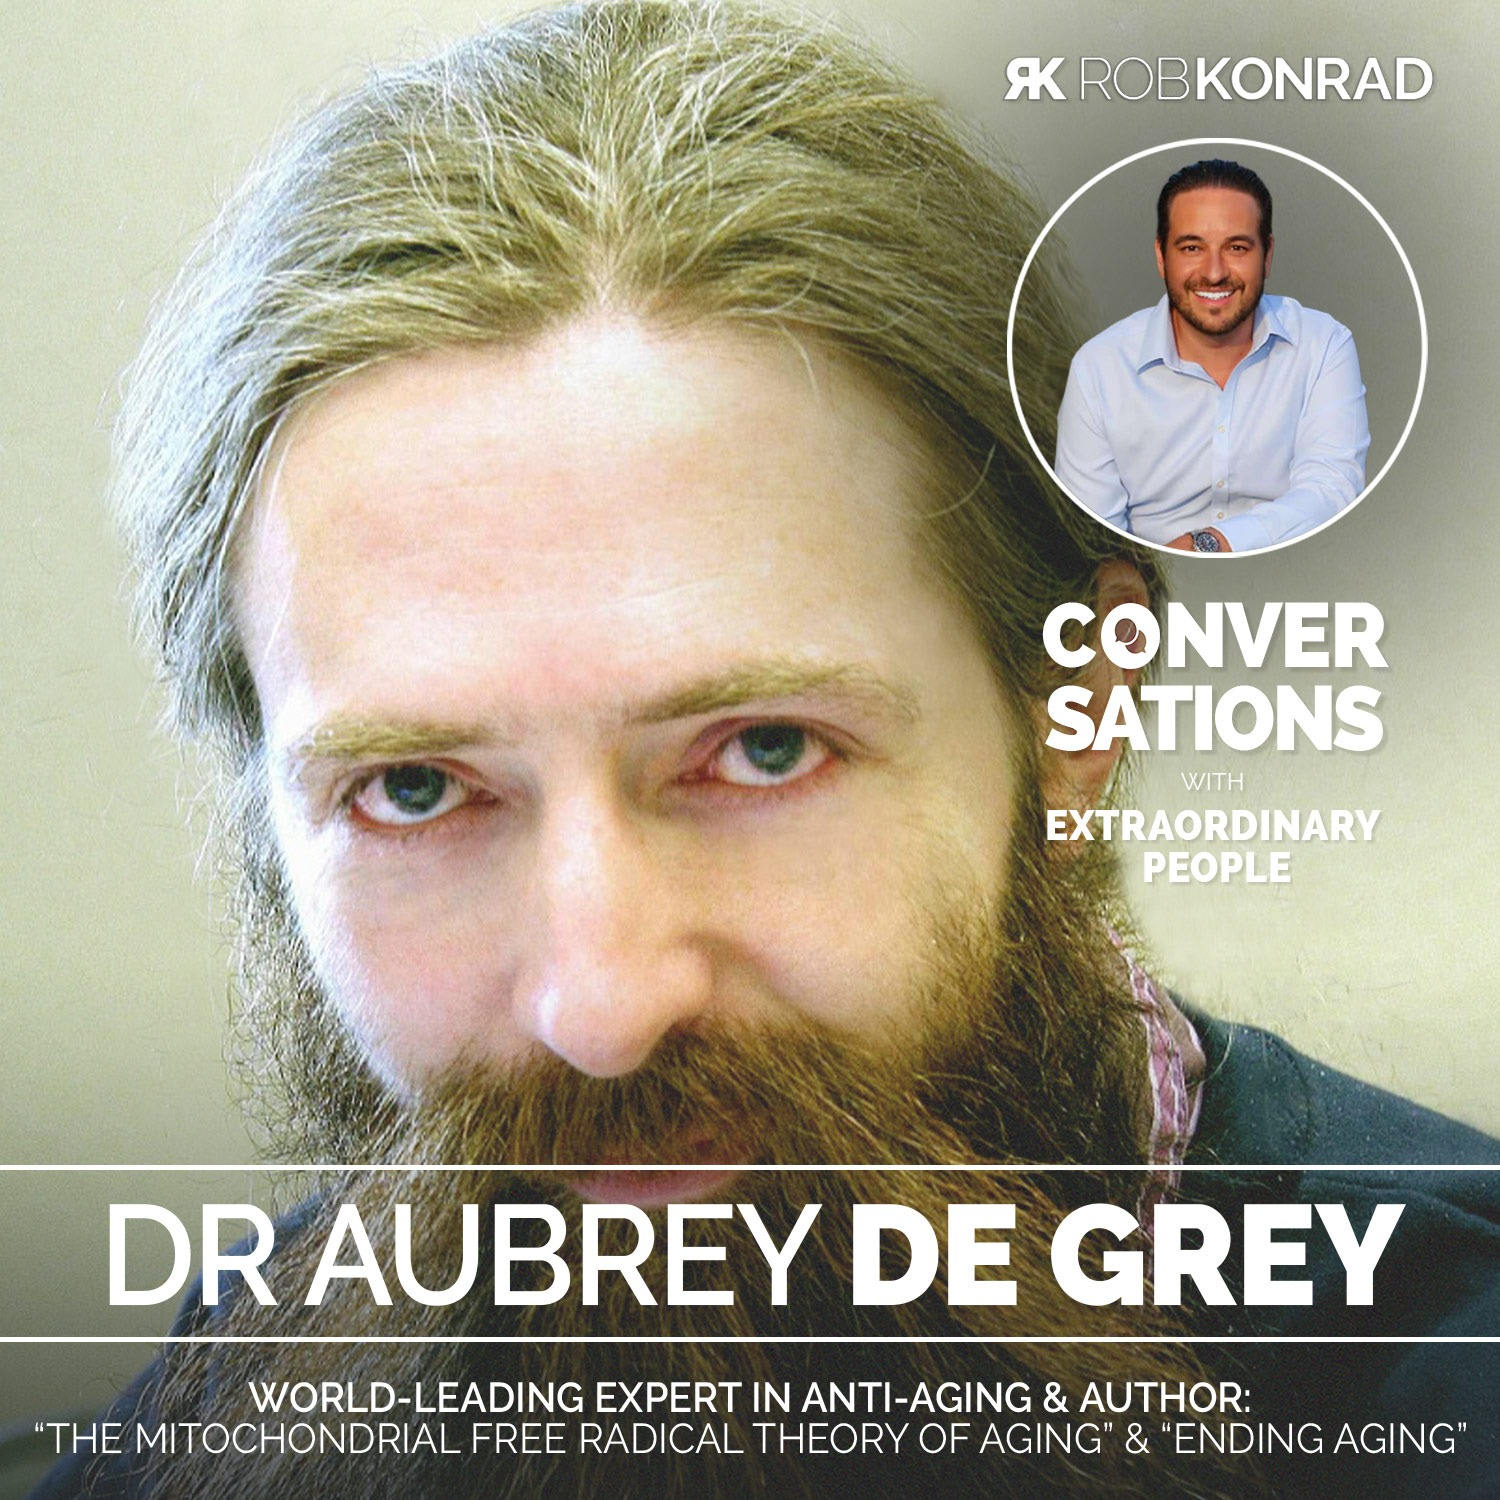 010. The Scientist Who Believes He Can Make Us Immortal: Dr. Aubrey De Grey